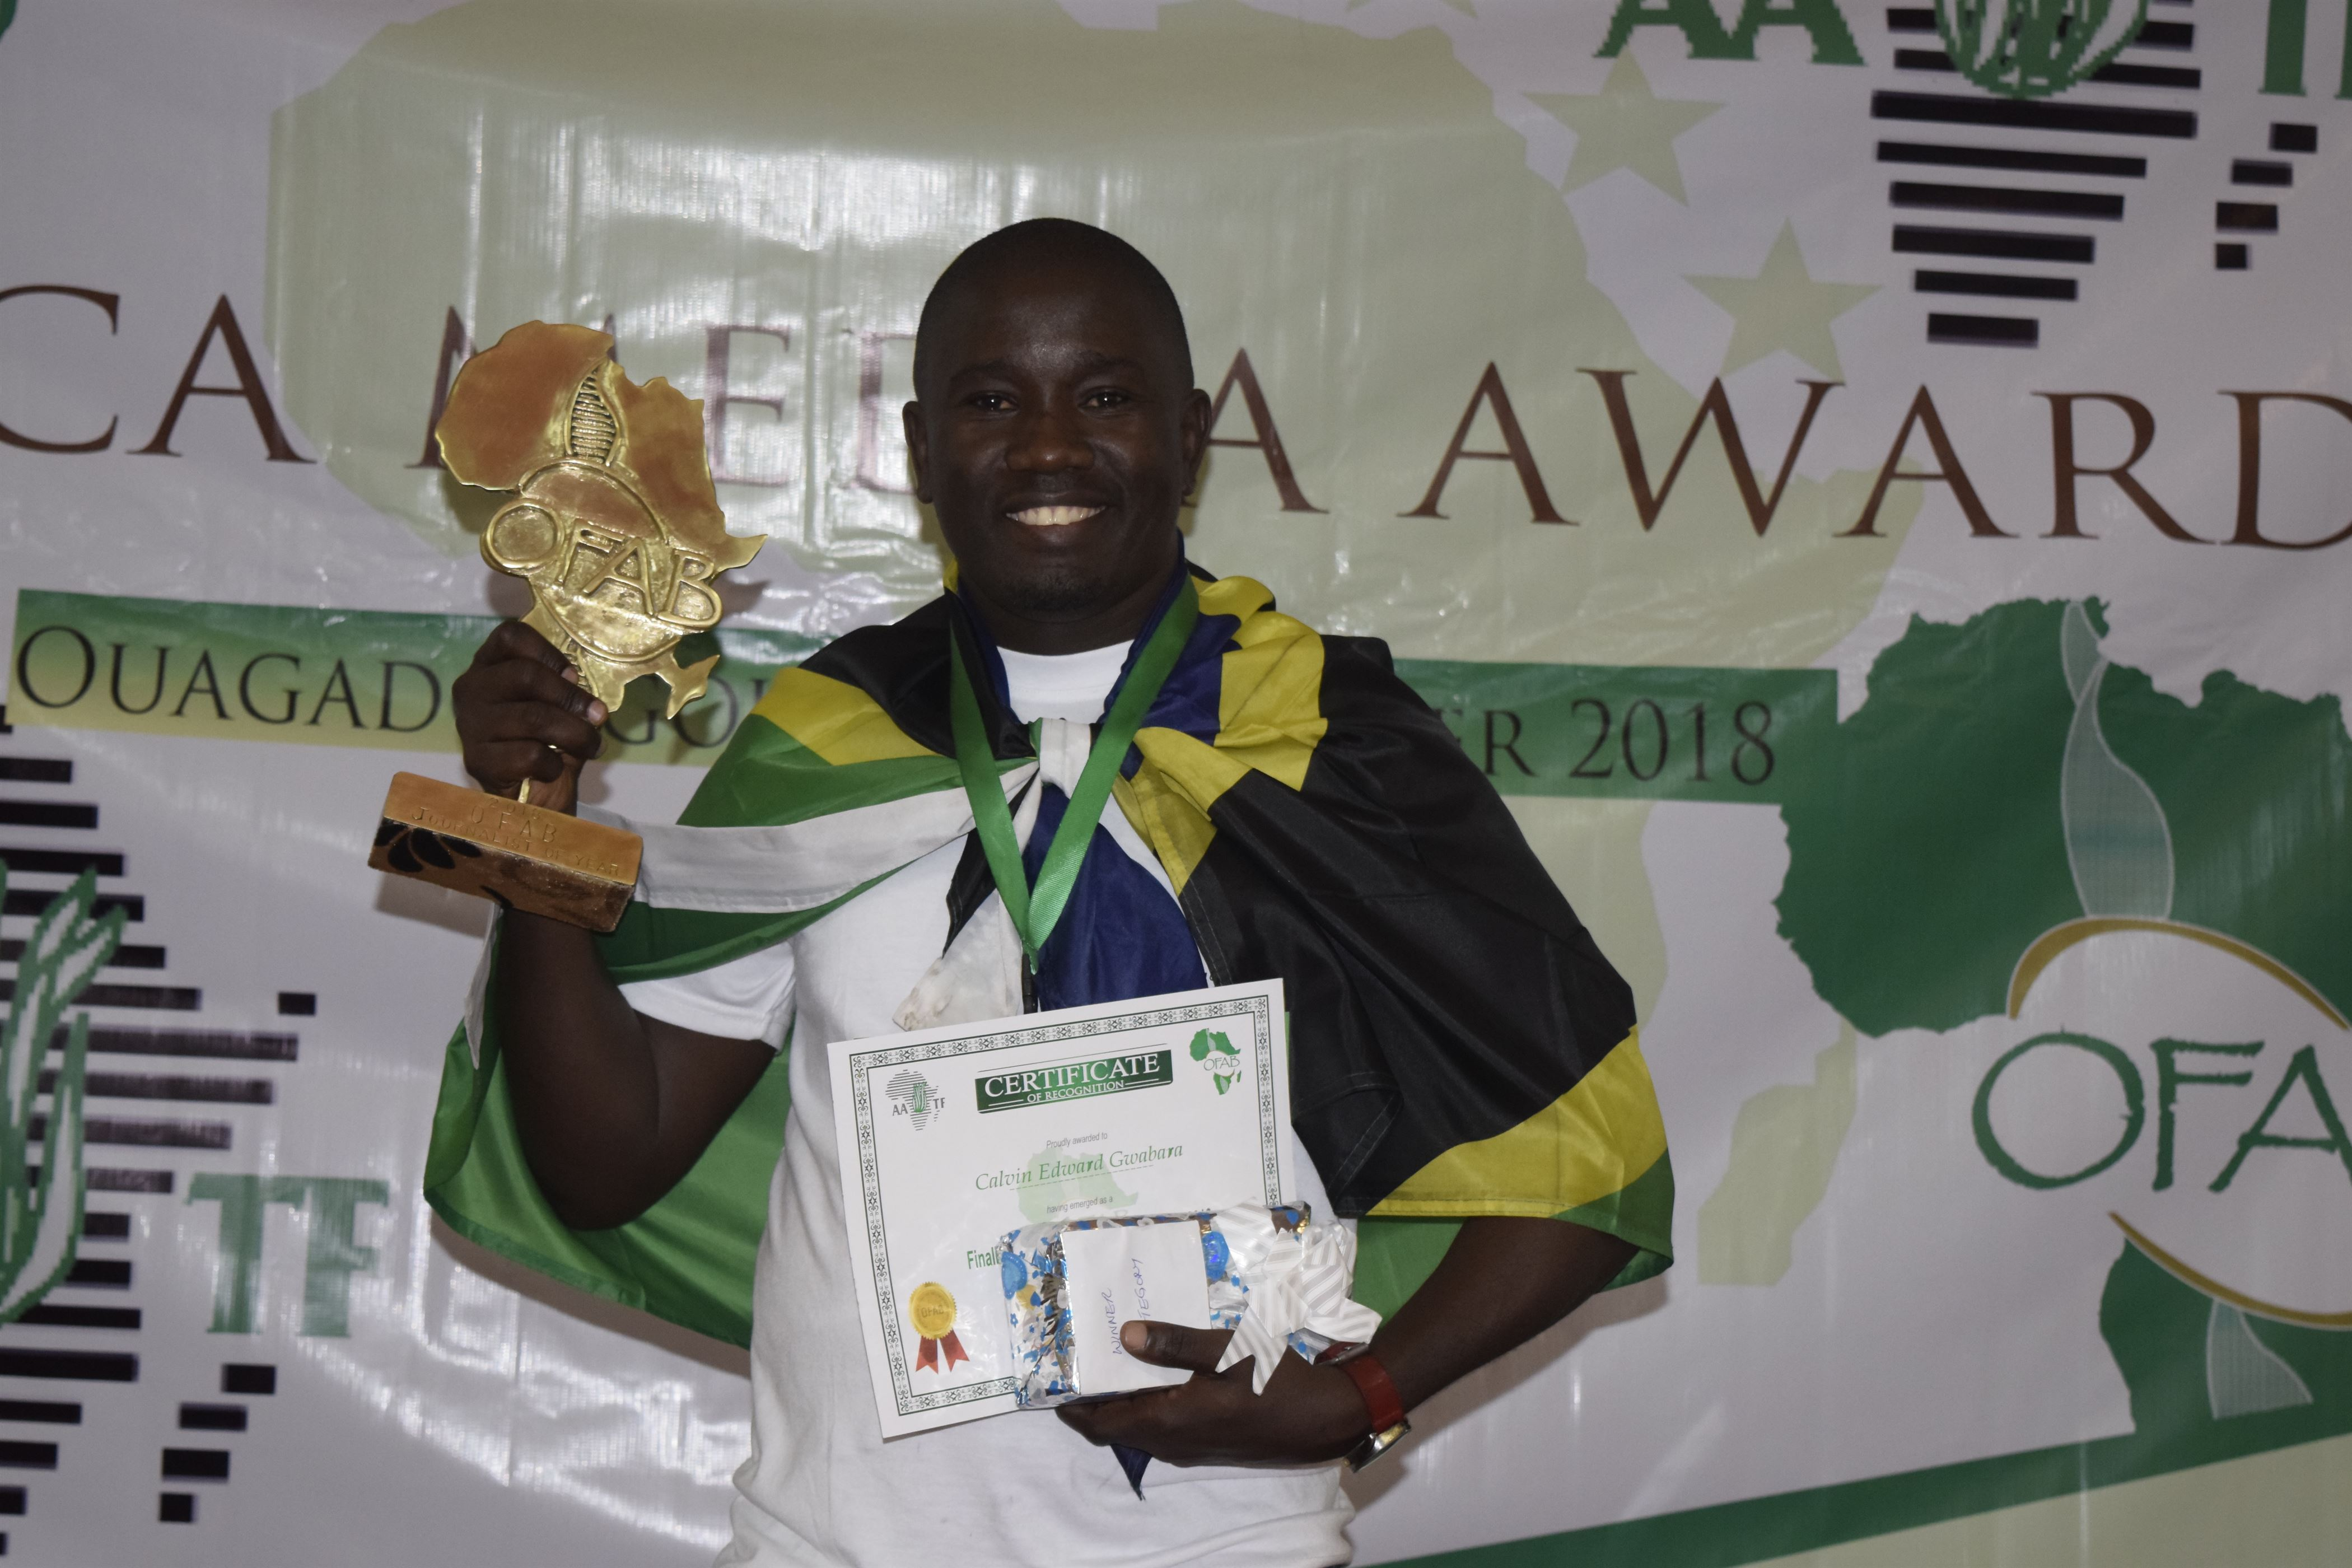 Mr Calvin Gwabara Displaying Awards and Certificates after emerged the winner of the Open Forum on Agriculture Biotechnology (OFAB) Africa Media Awards, 2018.